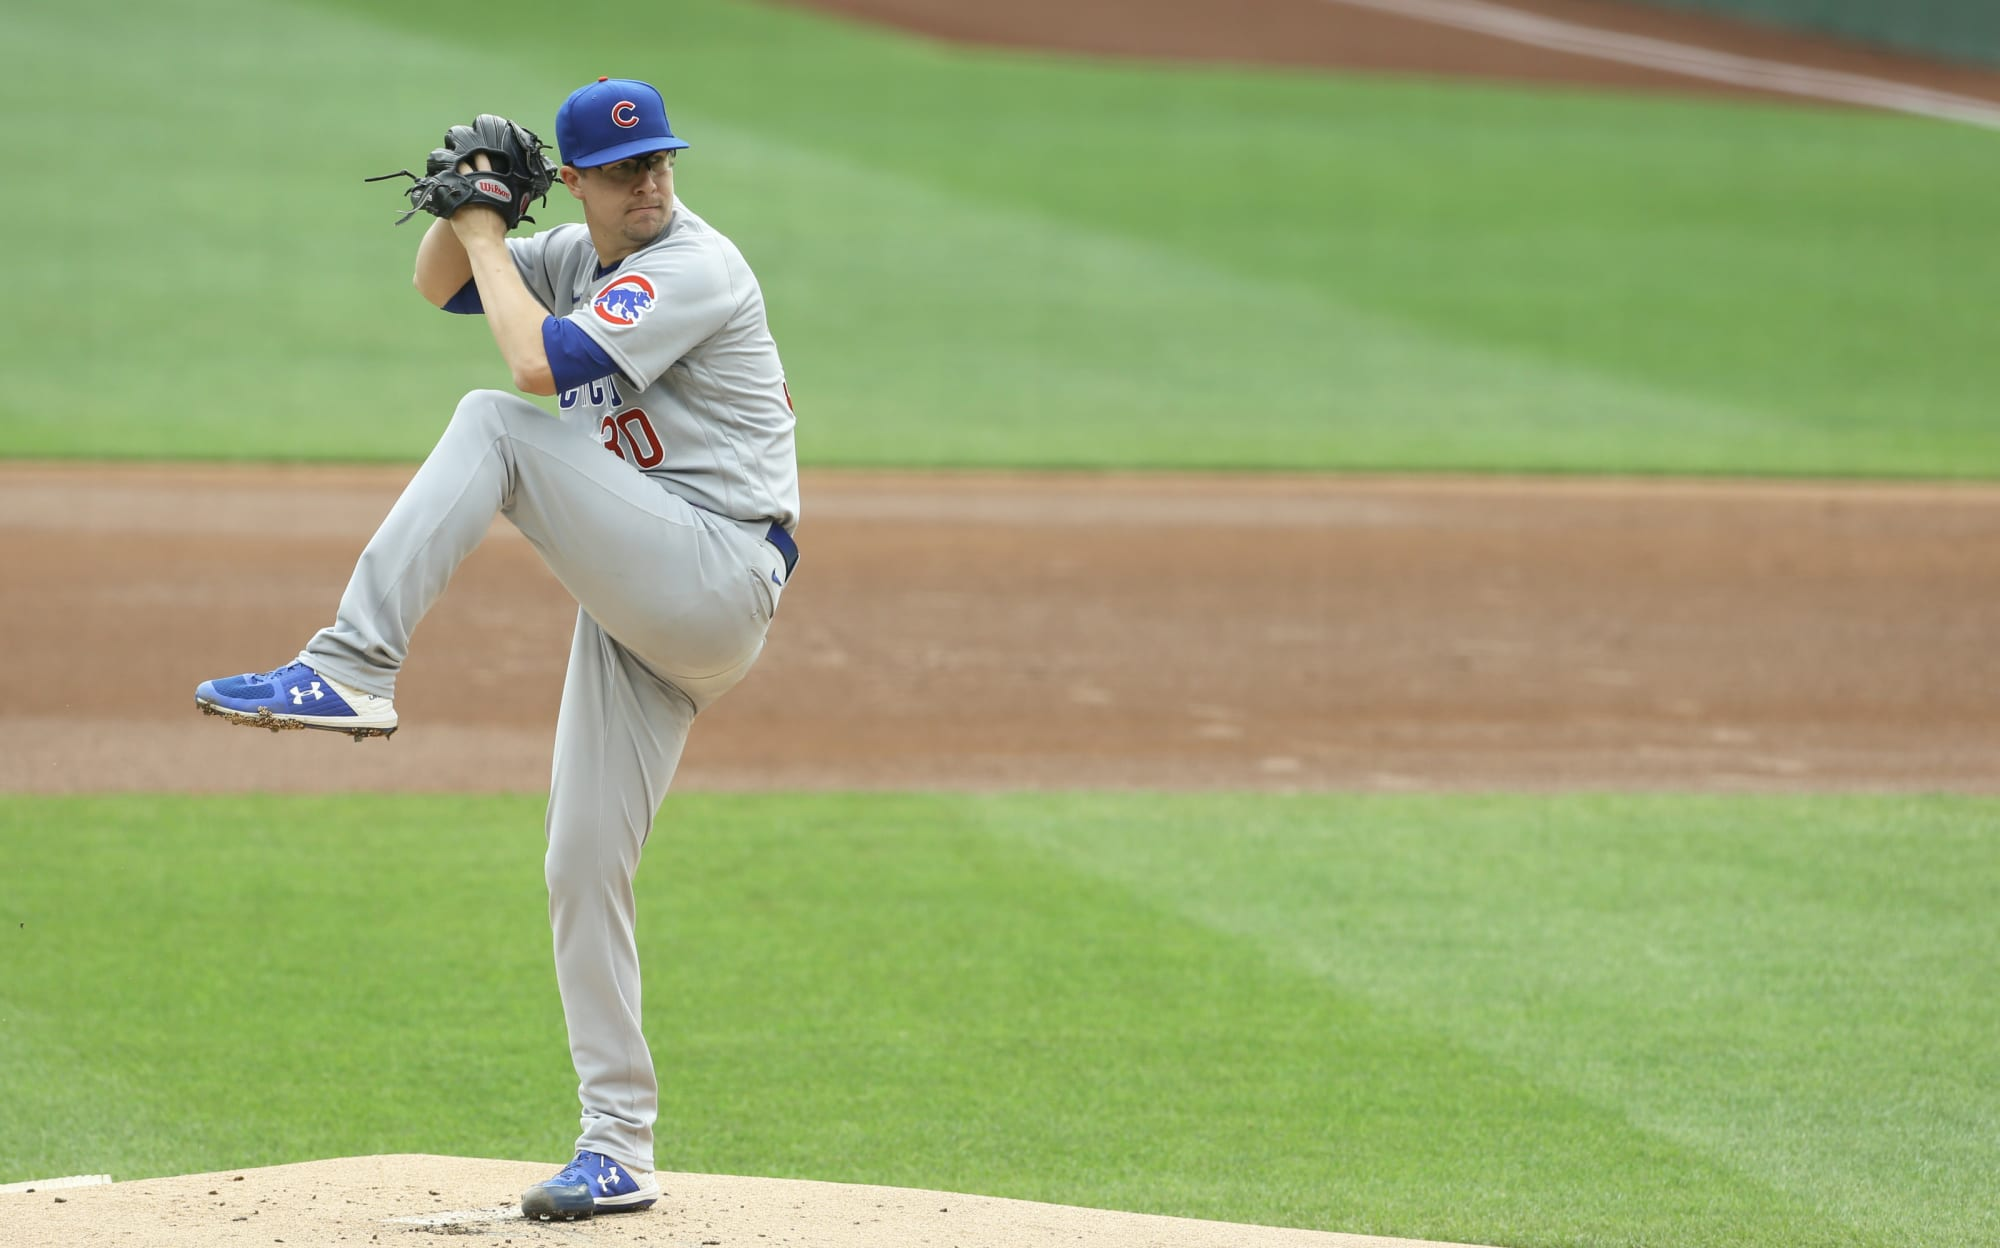 Cubs News: Adbert Alzolay, Alec Mills need to step up production